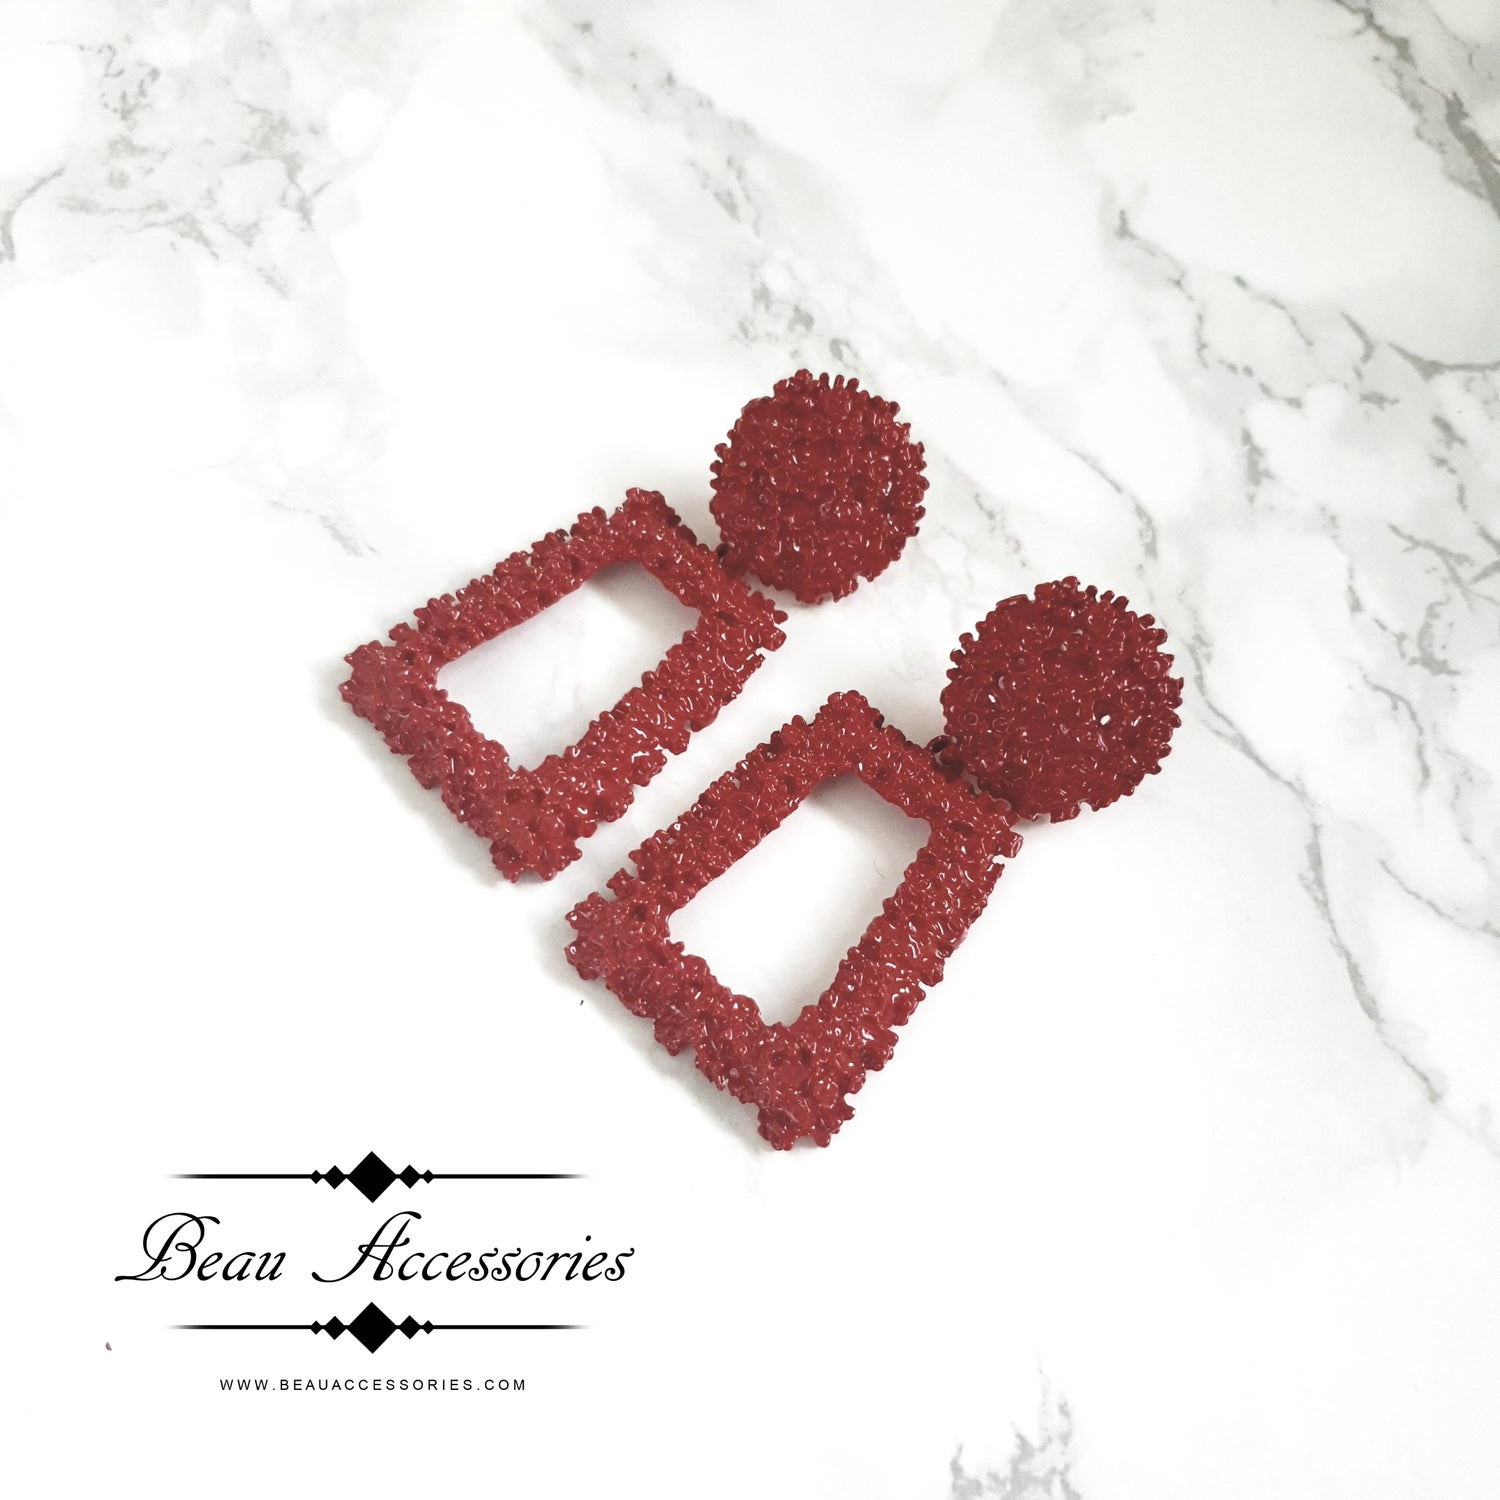 Image of Red Textured Statement Earrings